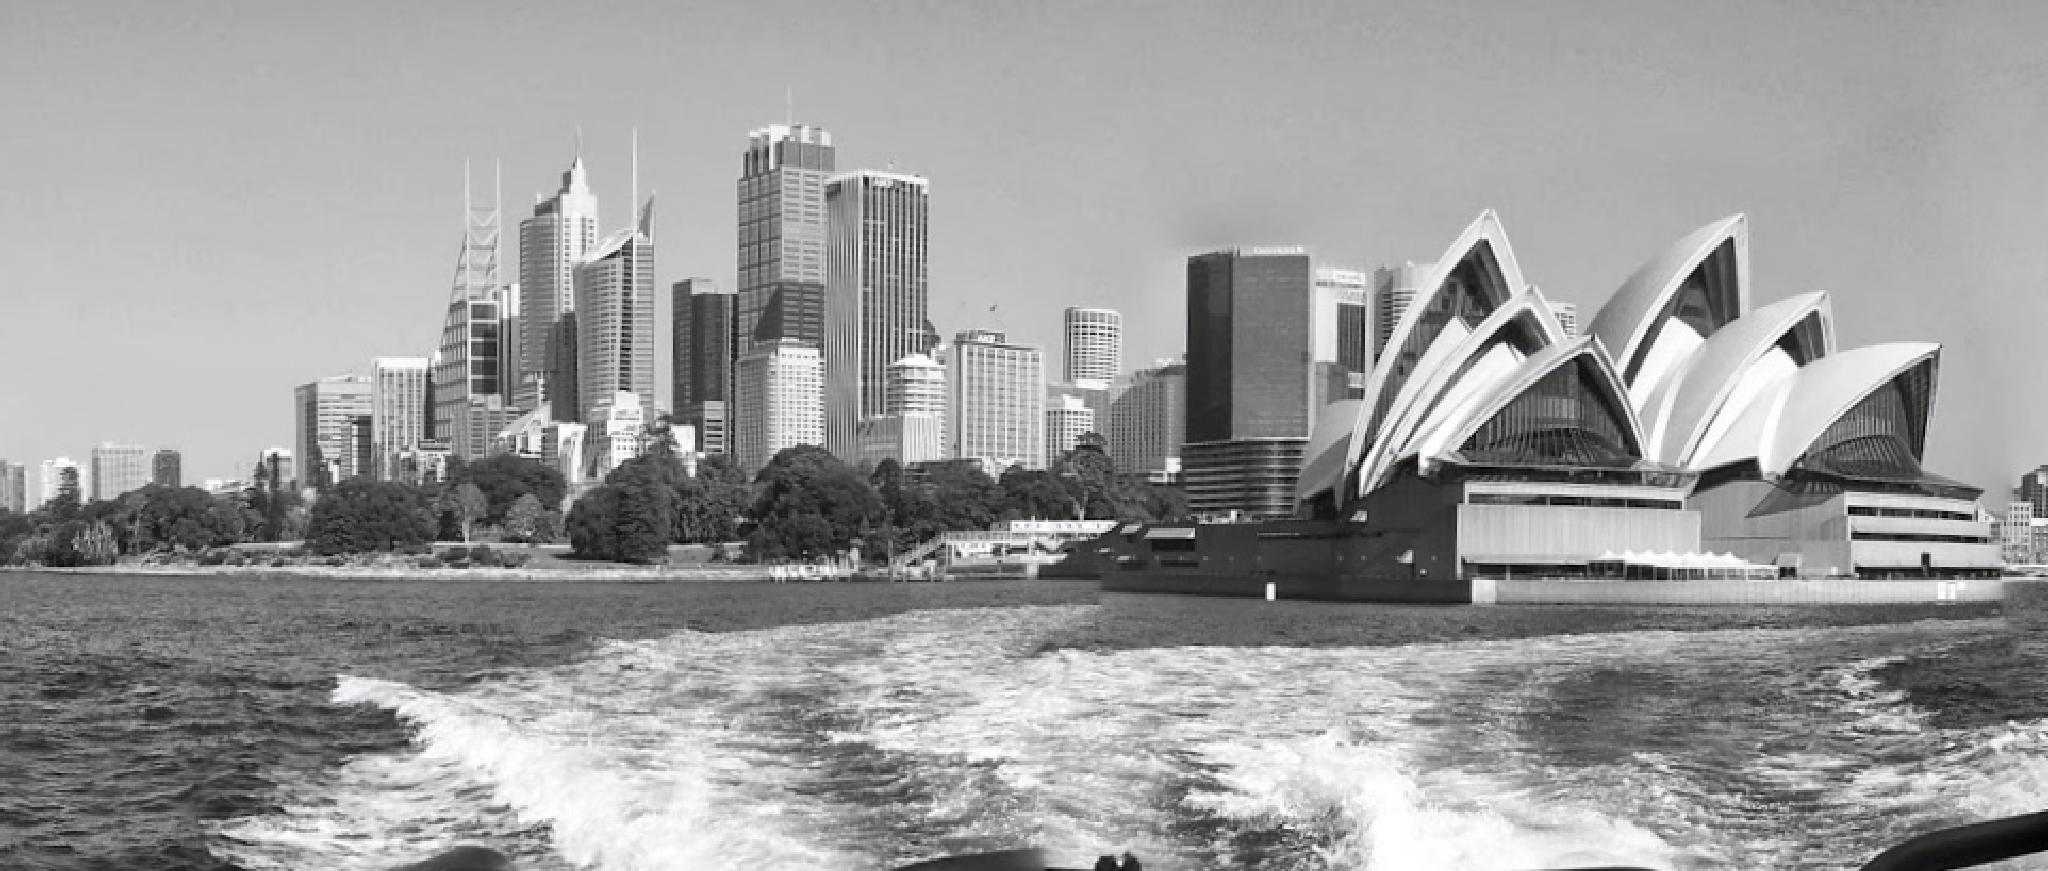 Sydney harbour with the iconic Sydney Opera House in prime position in downtown Sydney by John Beauchamp Ball